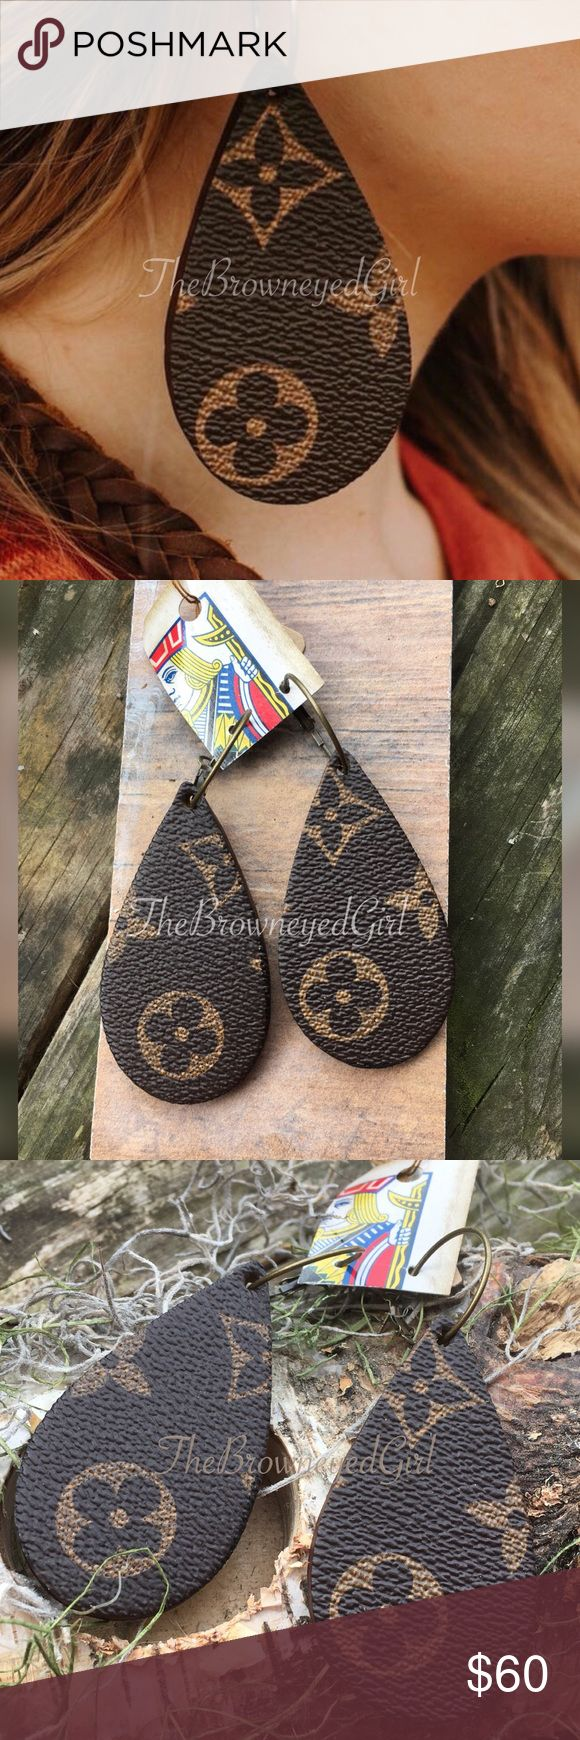 """Authentic Lv repurposed Earrings Authentic Louise Vuitton repurposed leather Tear drop earrings Cut with precision.  Size 3""""  Thick leather light weight  I'm only selling 1 pair keeping the rest for now.  First come first serve NO trades OR HOLDS  PRICE FIRM!! Jewelry Earrings"""